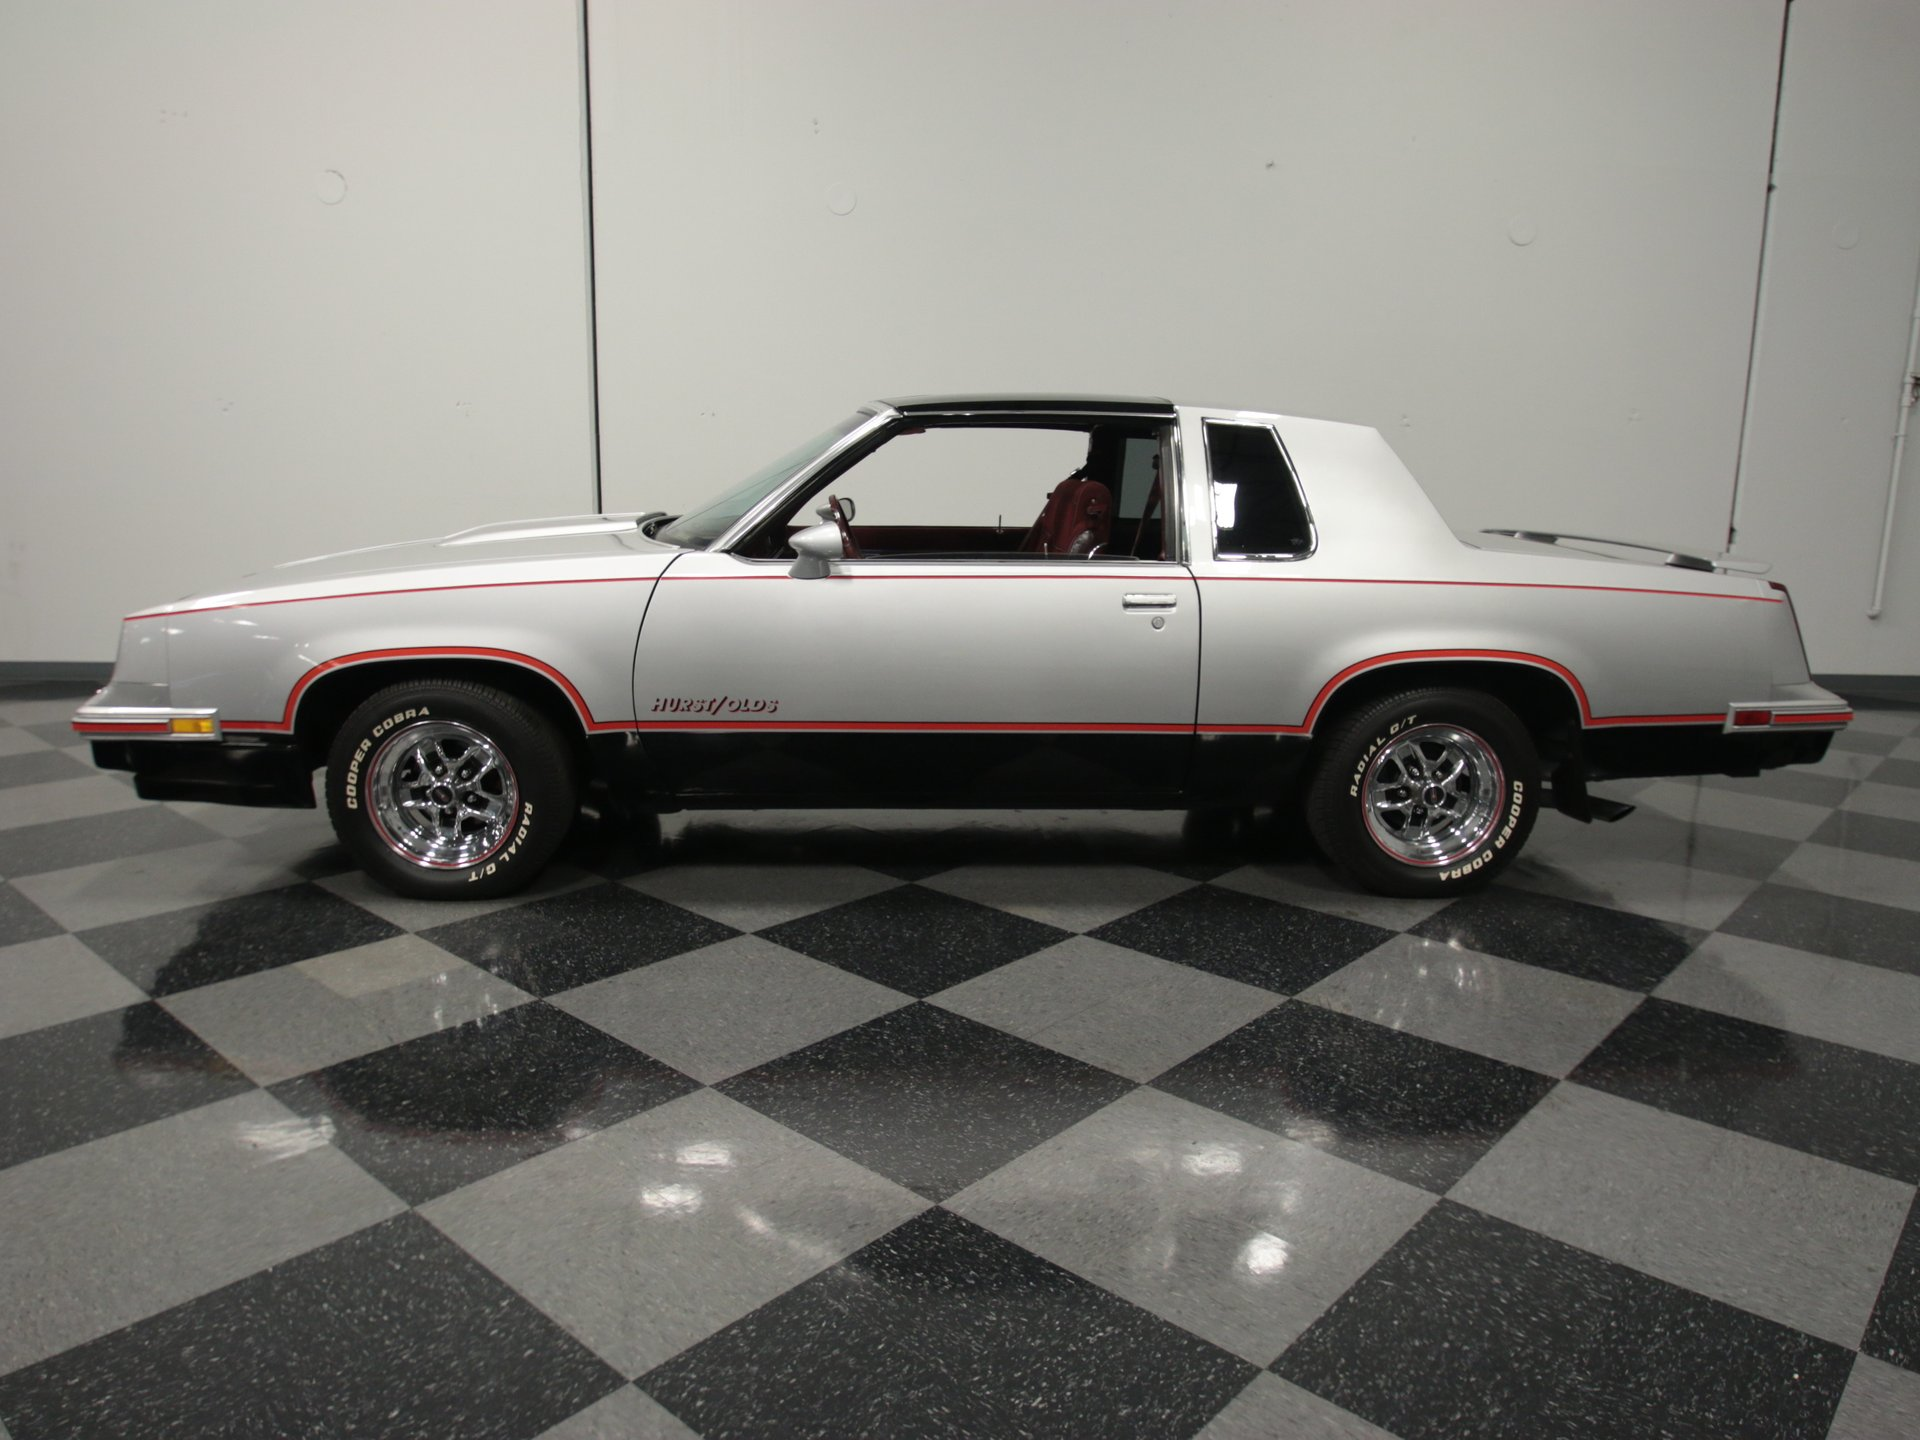 1984 Oldsmobile Cutlass | Streetside Classics - The Nation's Trusted